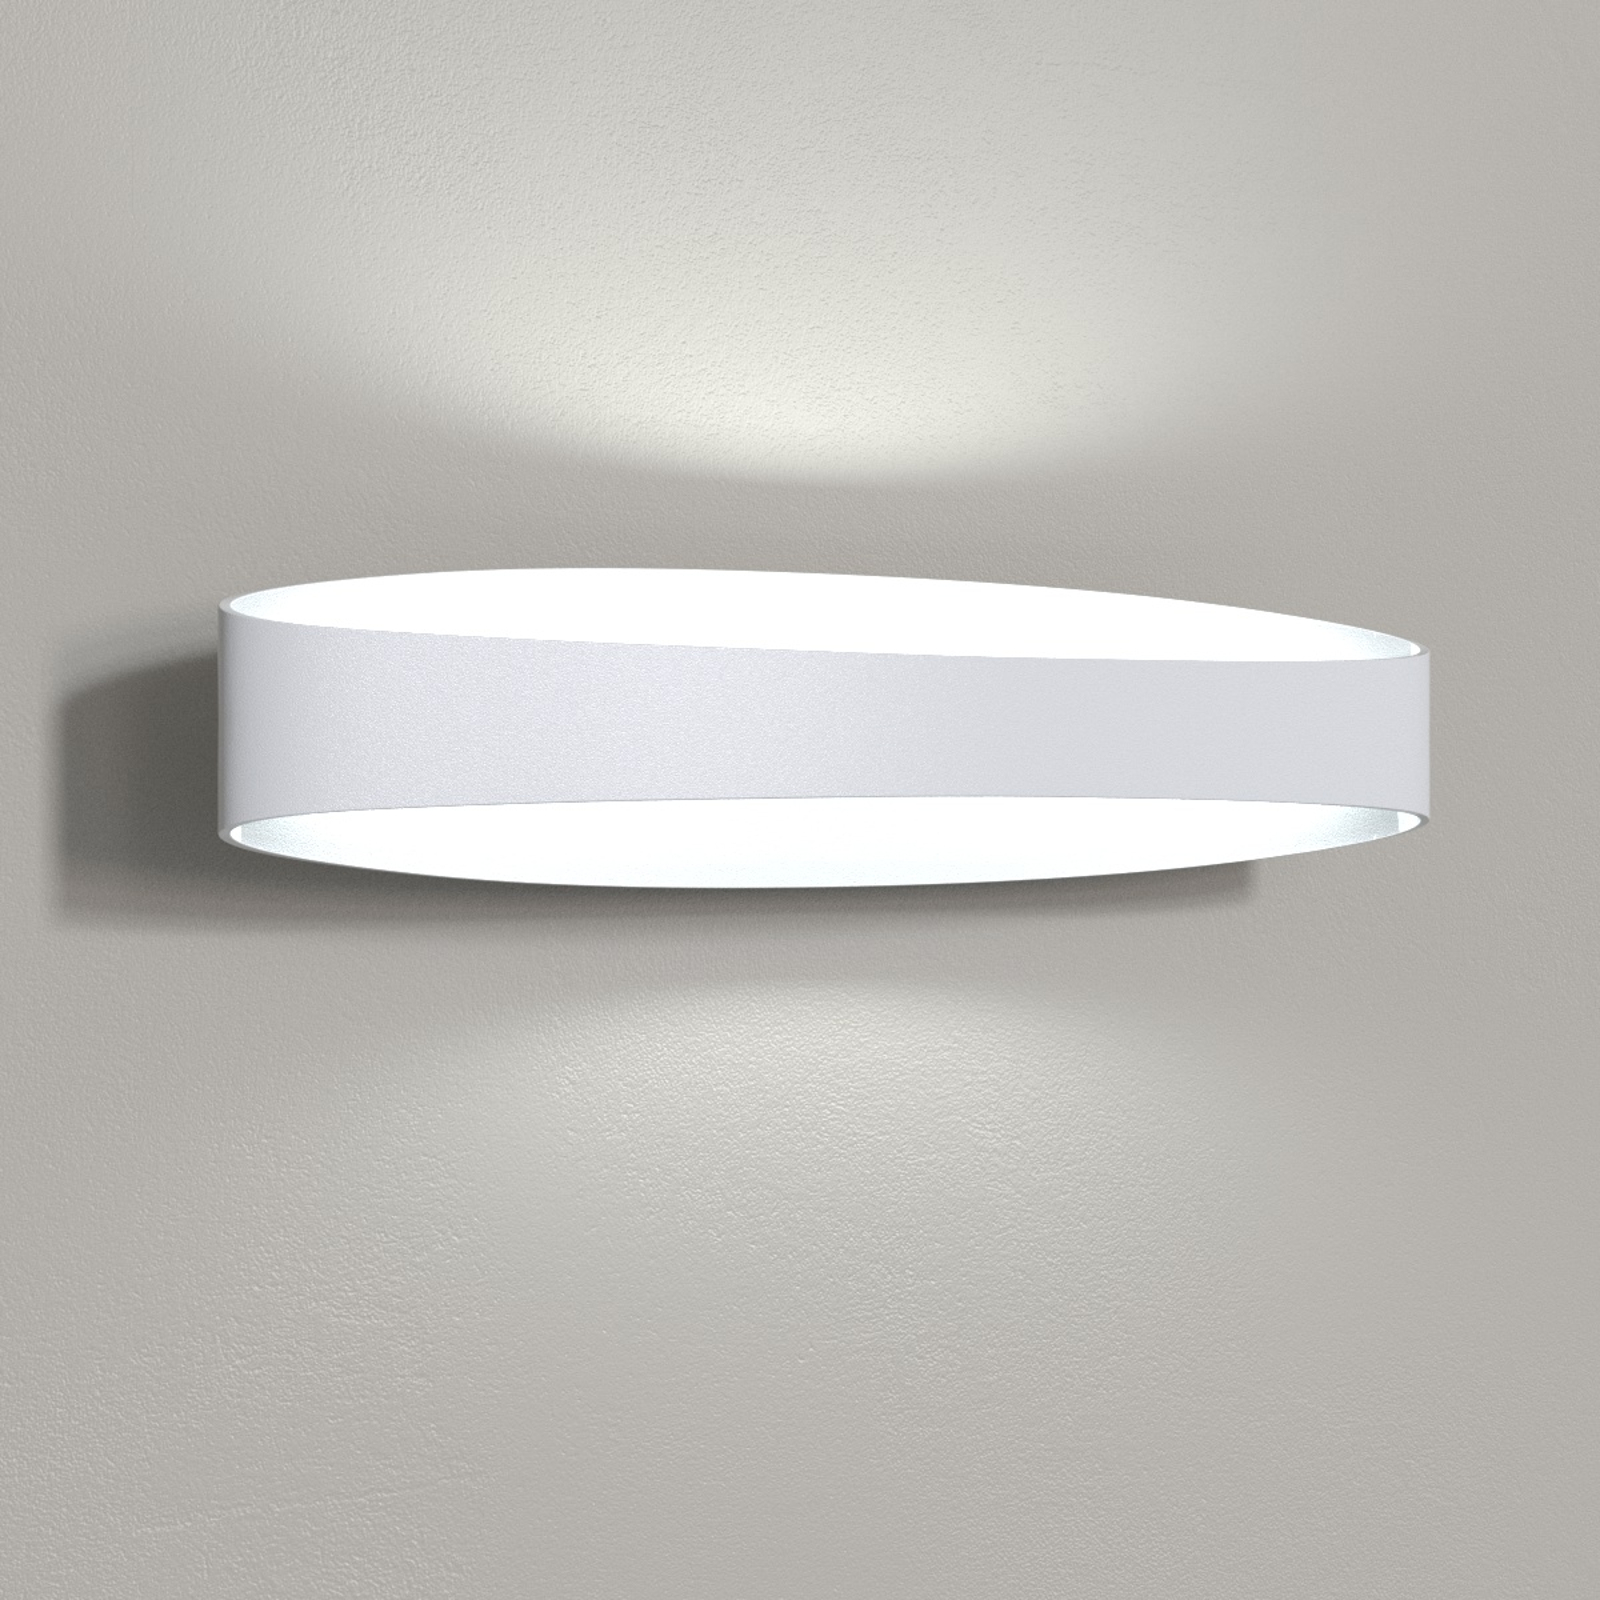 Bridge applique LED aluminium moulé sous pression